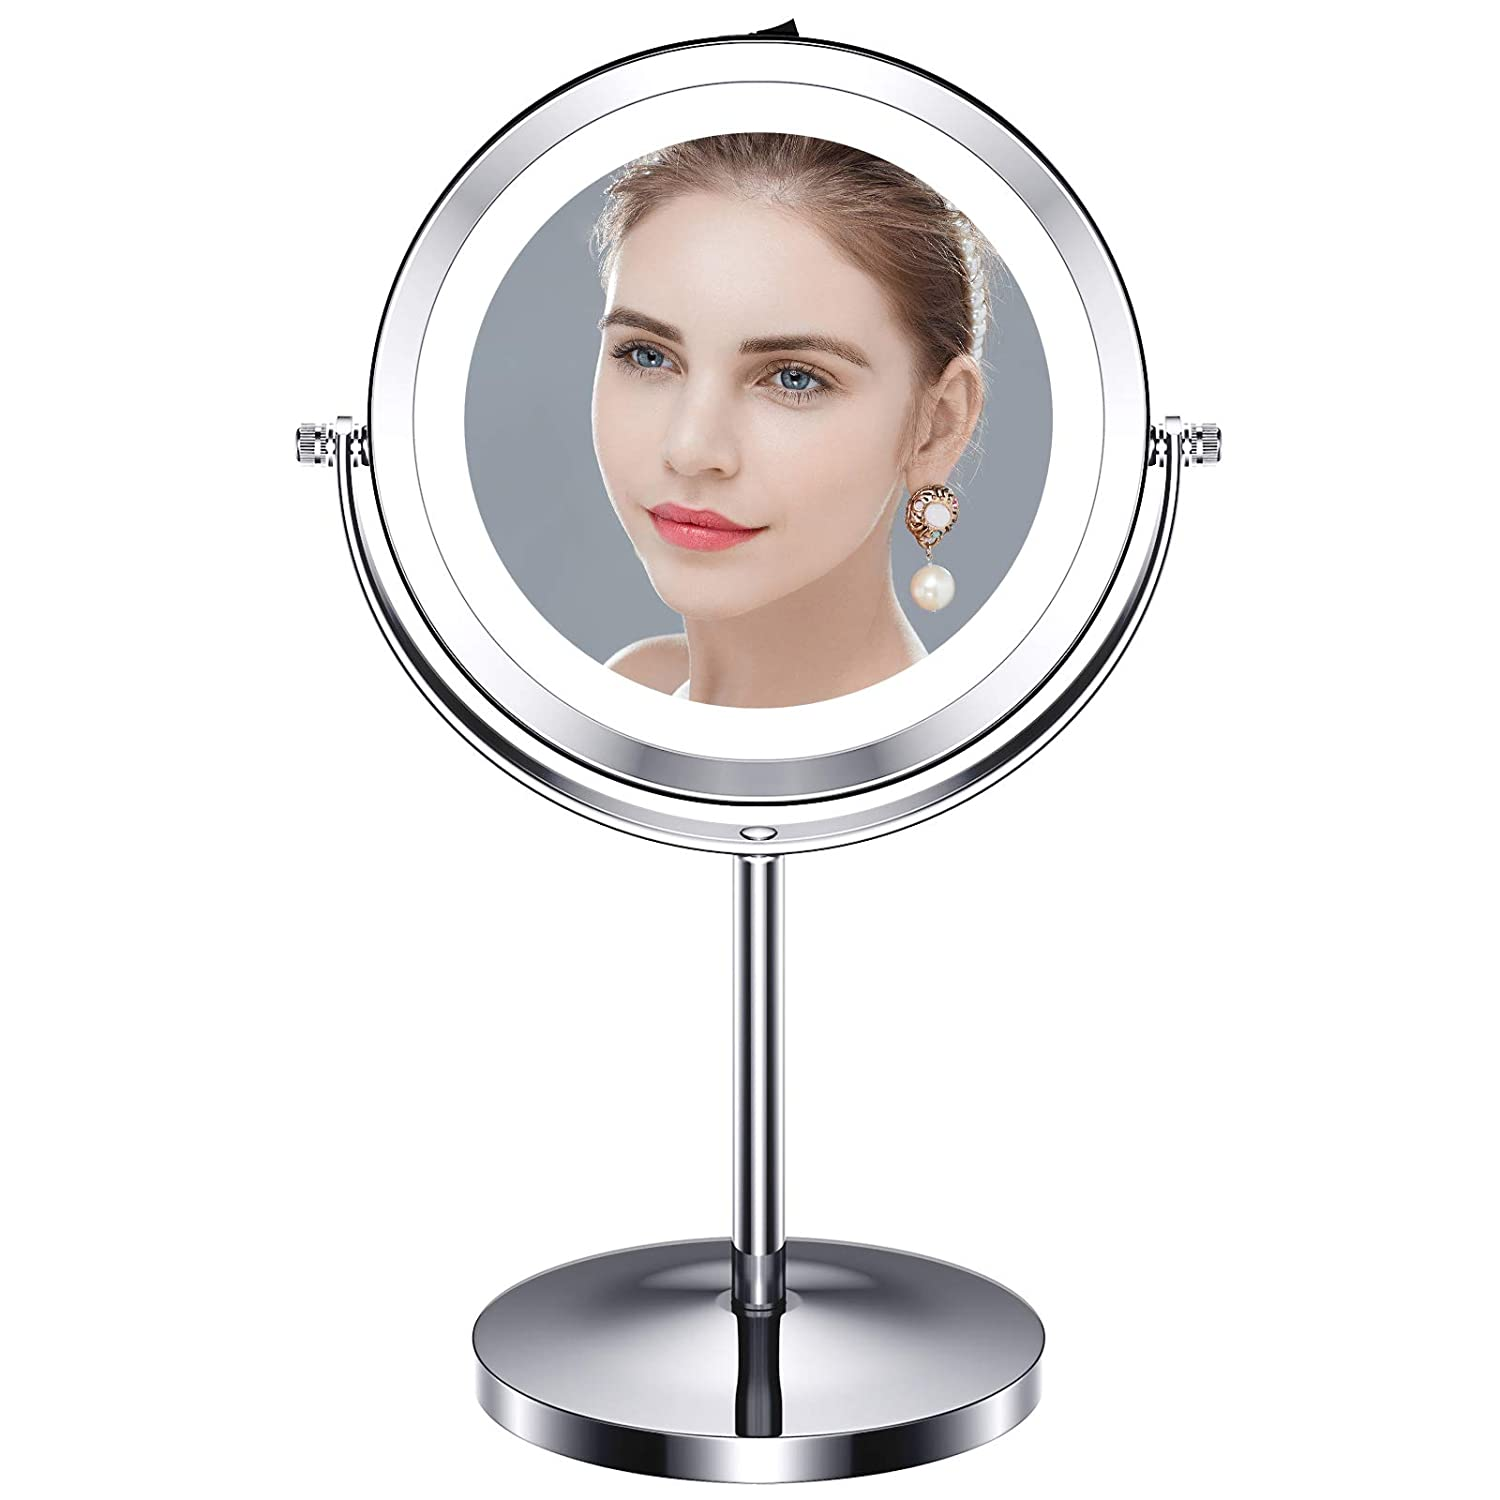 Buy Benbilry 10x Magnifying Lighted Makeup Mirror 7 Inch Double Sided Vanity Mirror With 10 Magnification Cosmetic Mirror With Lights For Bathroom Or Bedroom Battery Operated Online In Turkey B07ykpwcnw